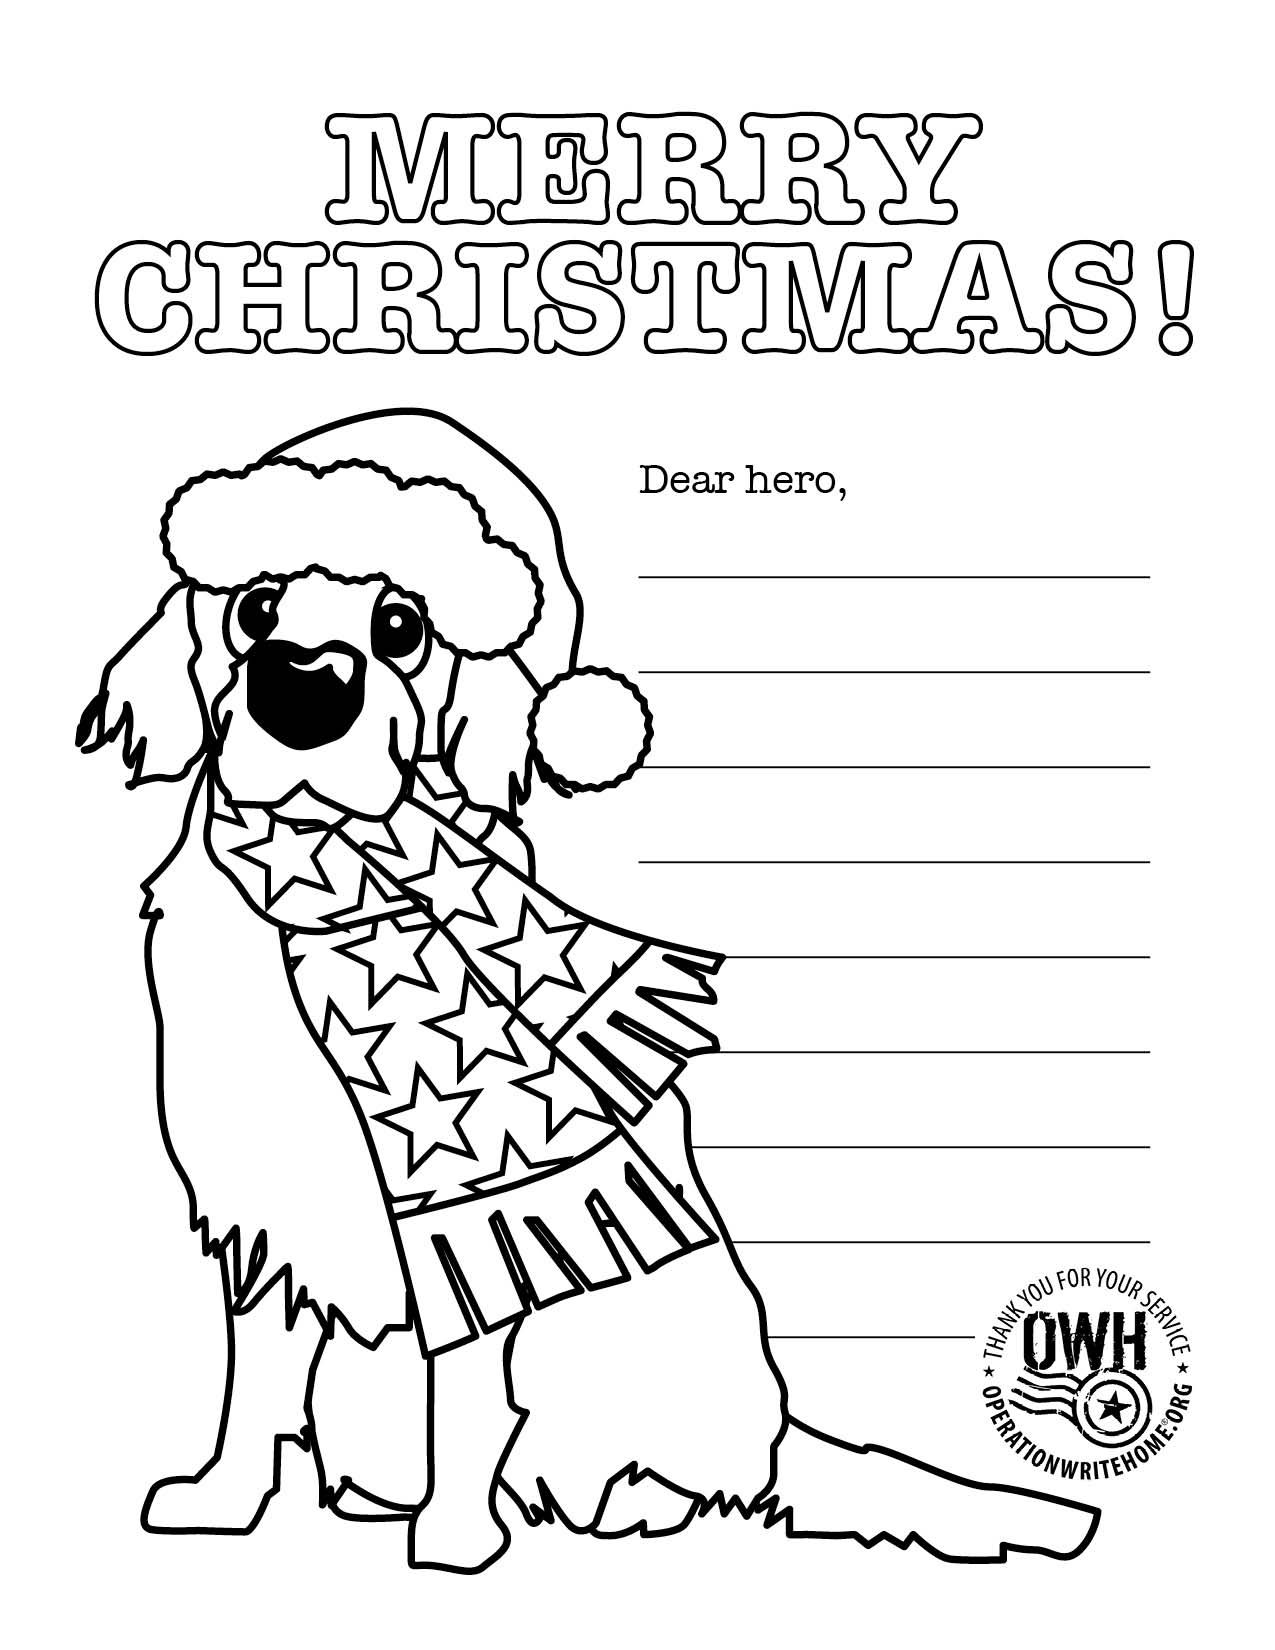 Christmas Coloring Pages For Cards With Military